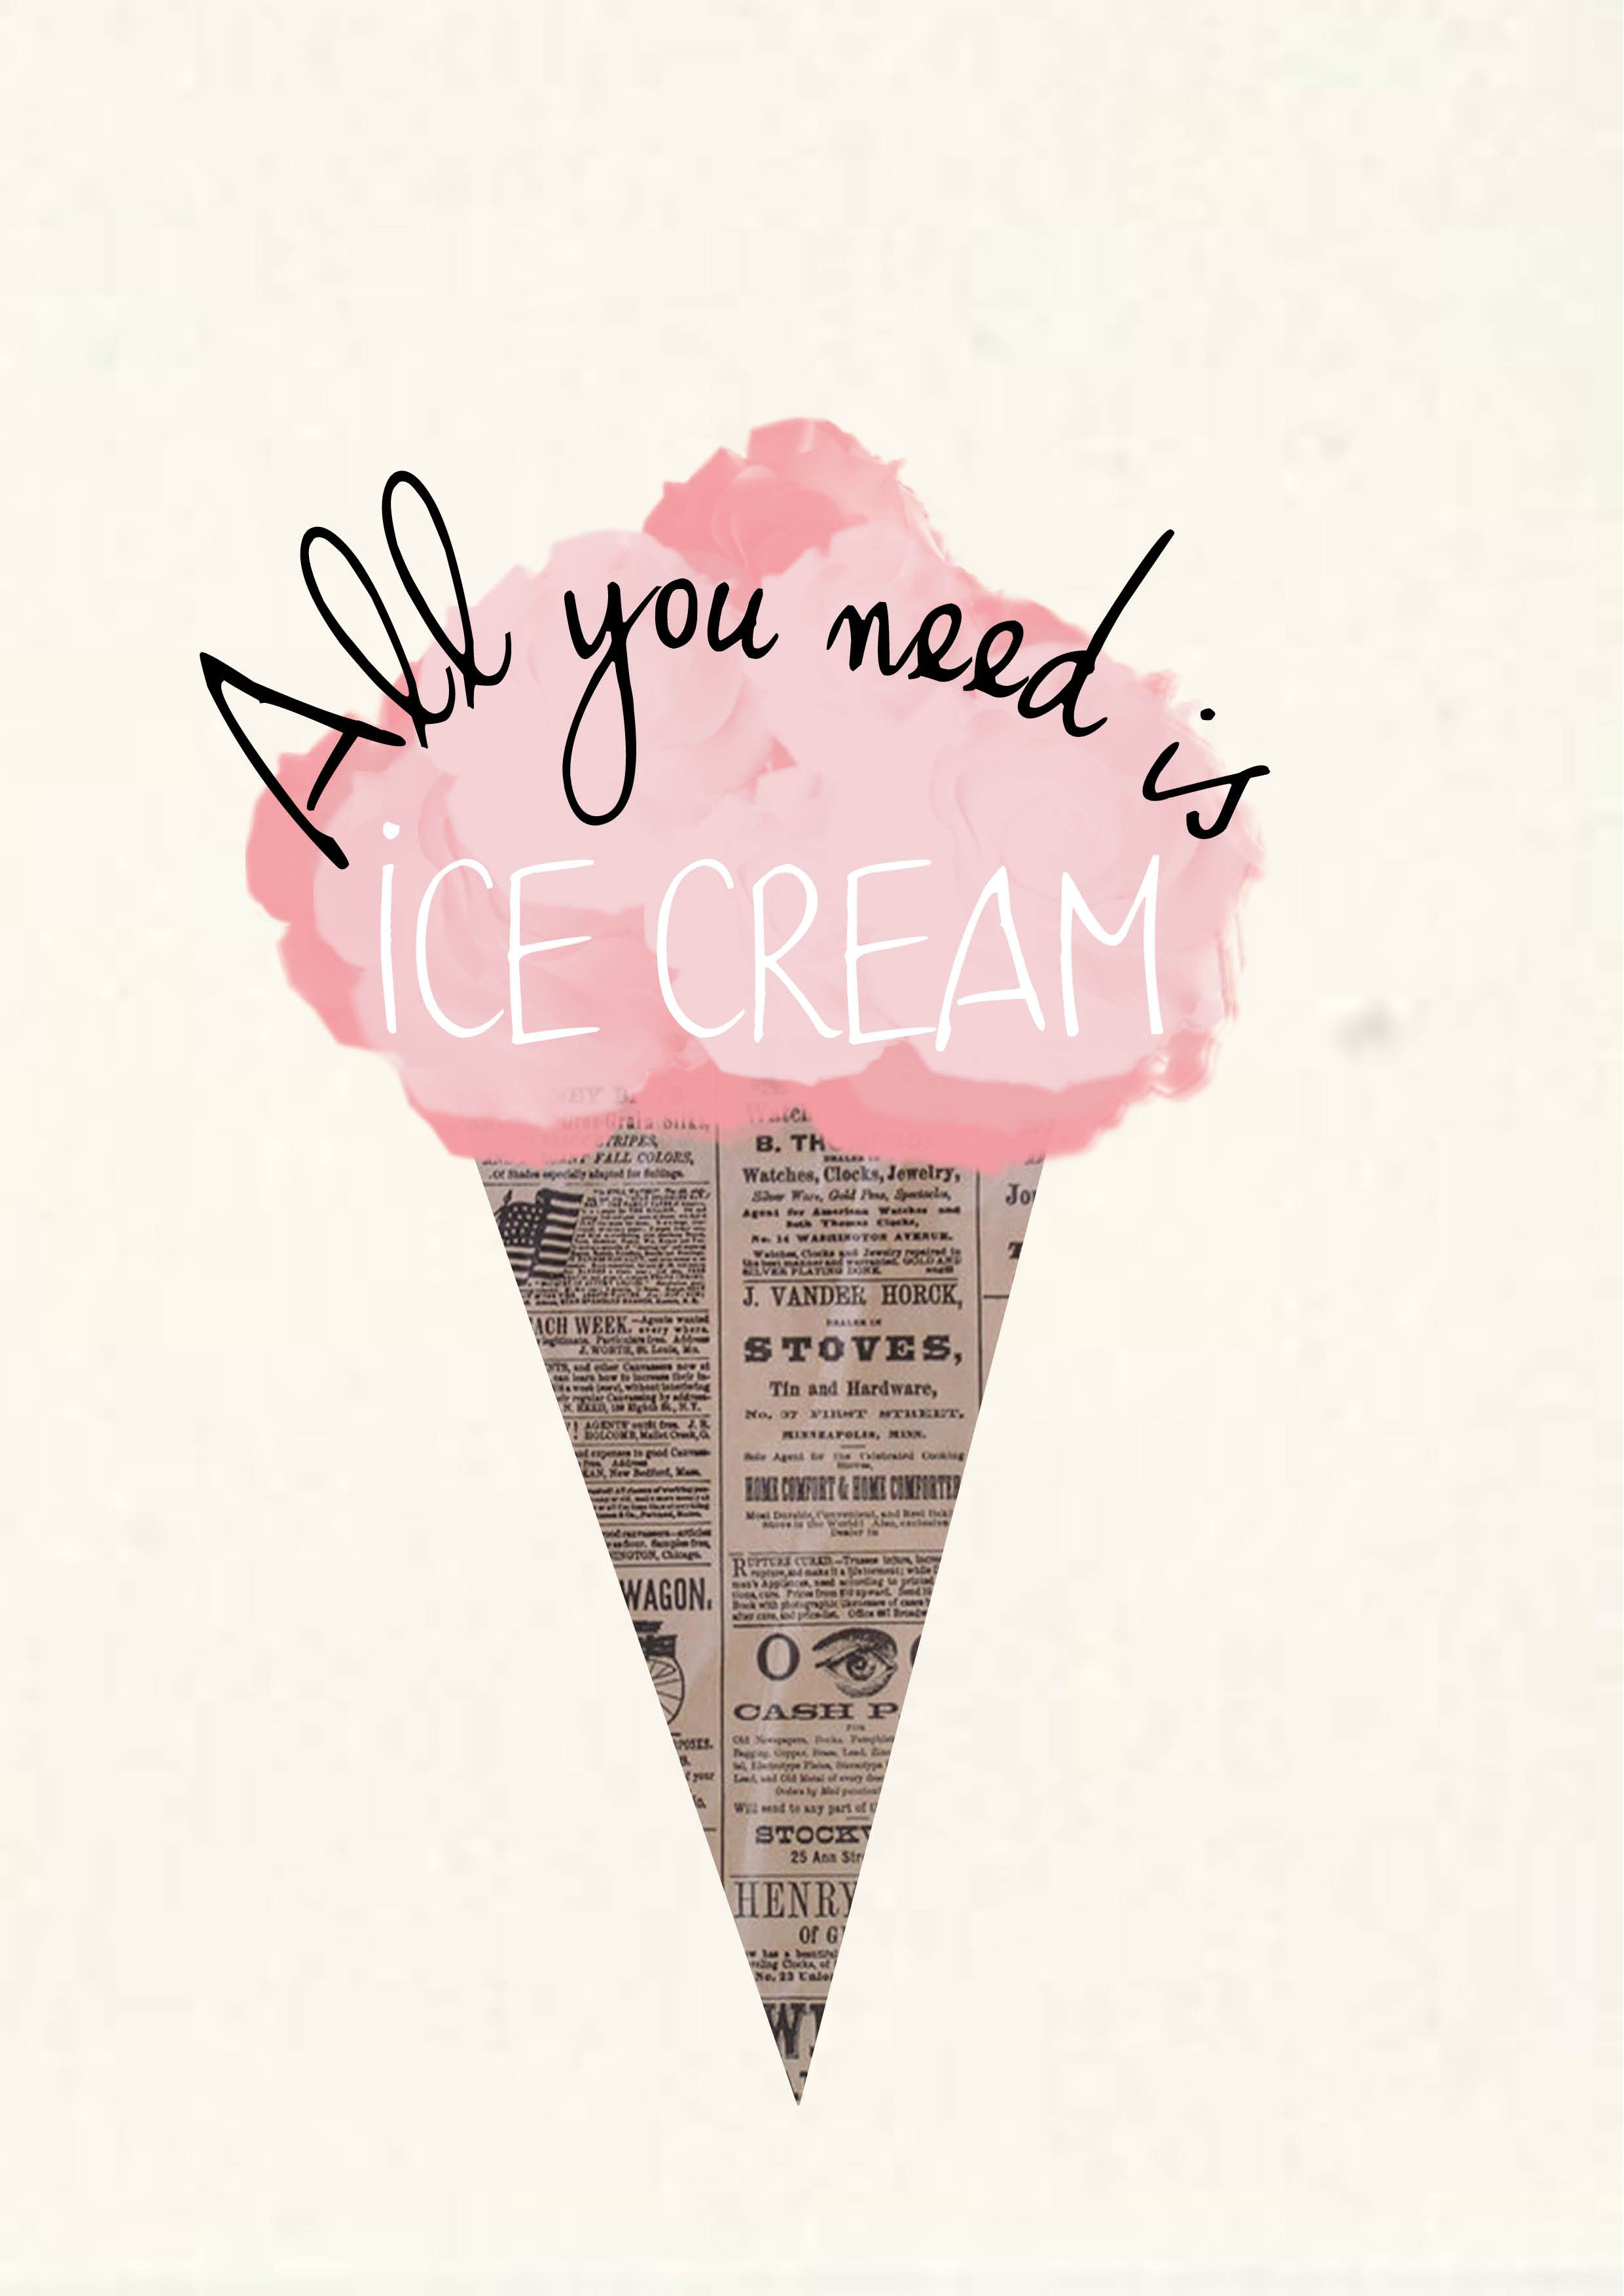 All You Need Is Ice Cream Motivation Pinterest Wallpaper - Ice cream knows how you feel